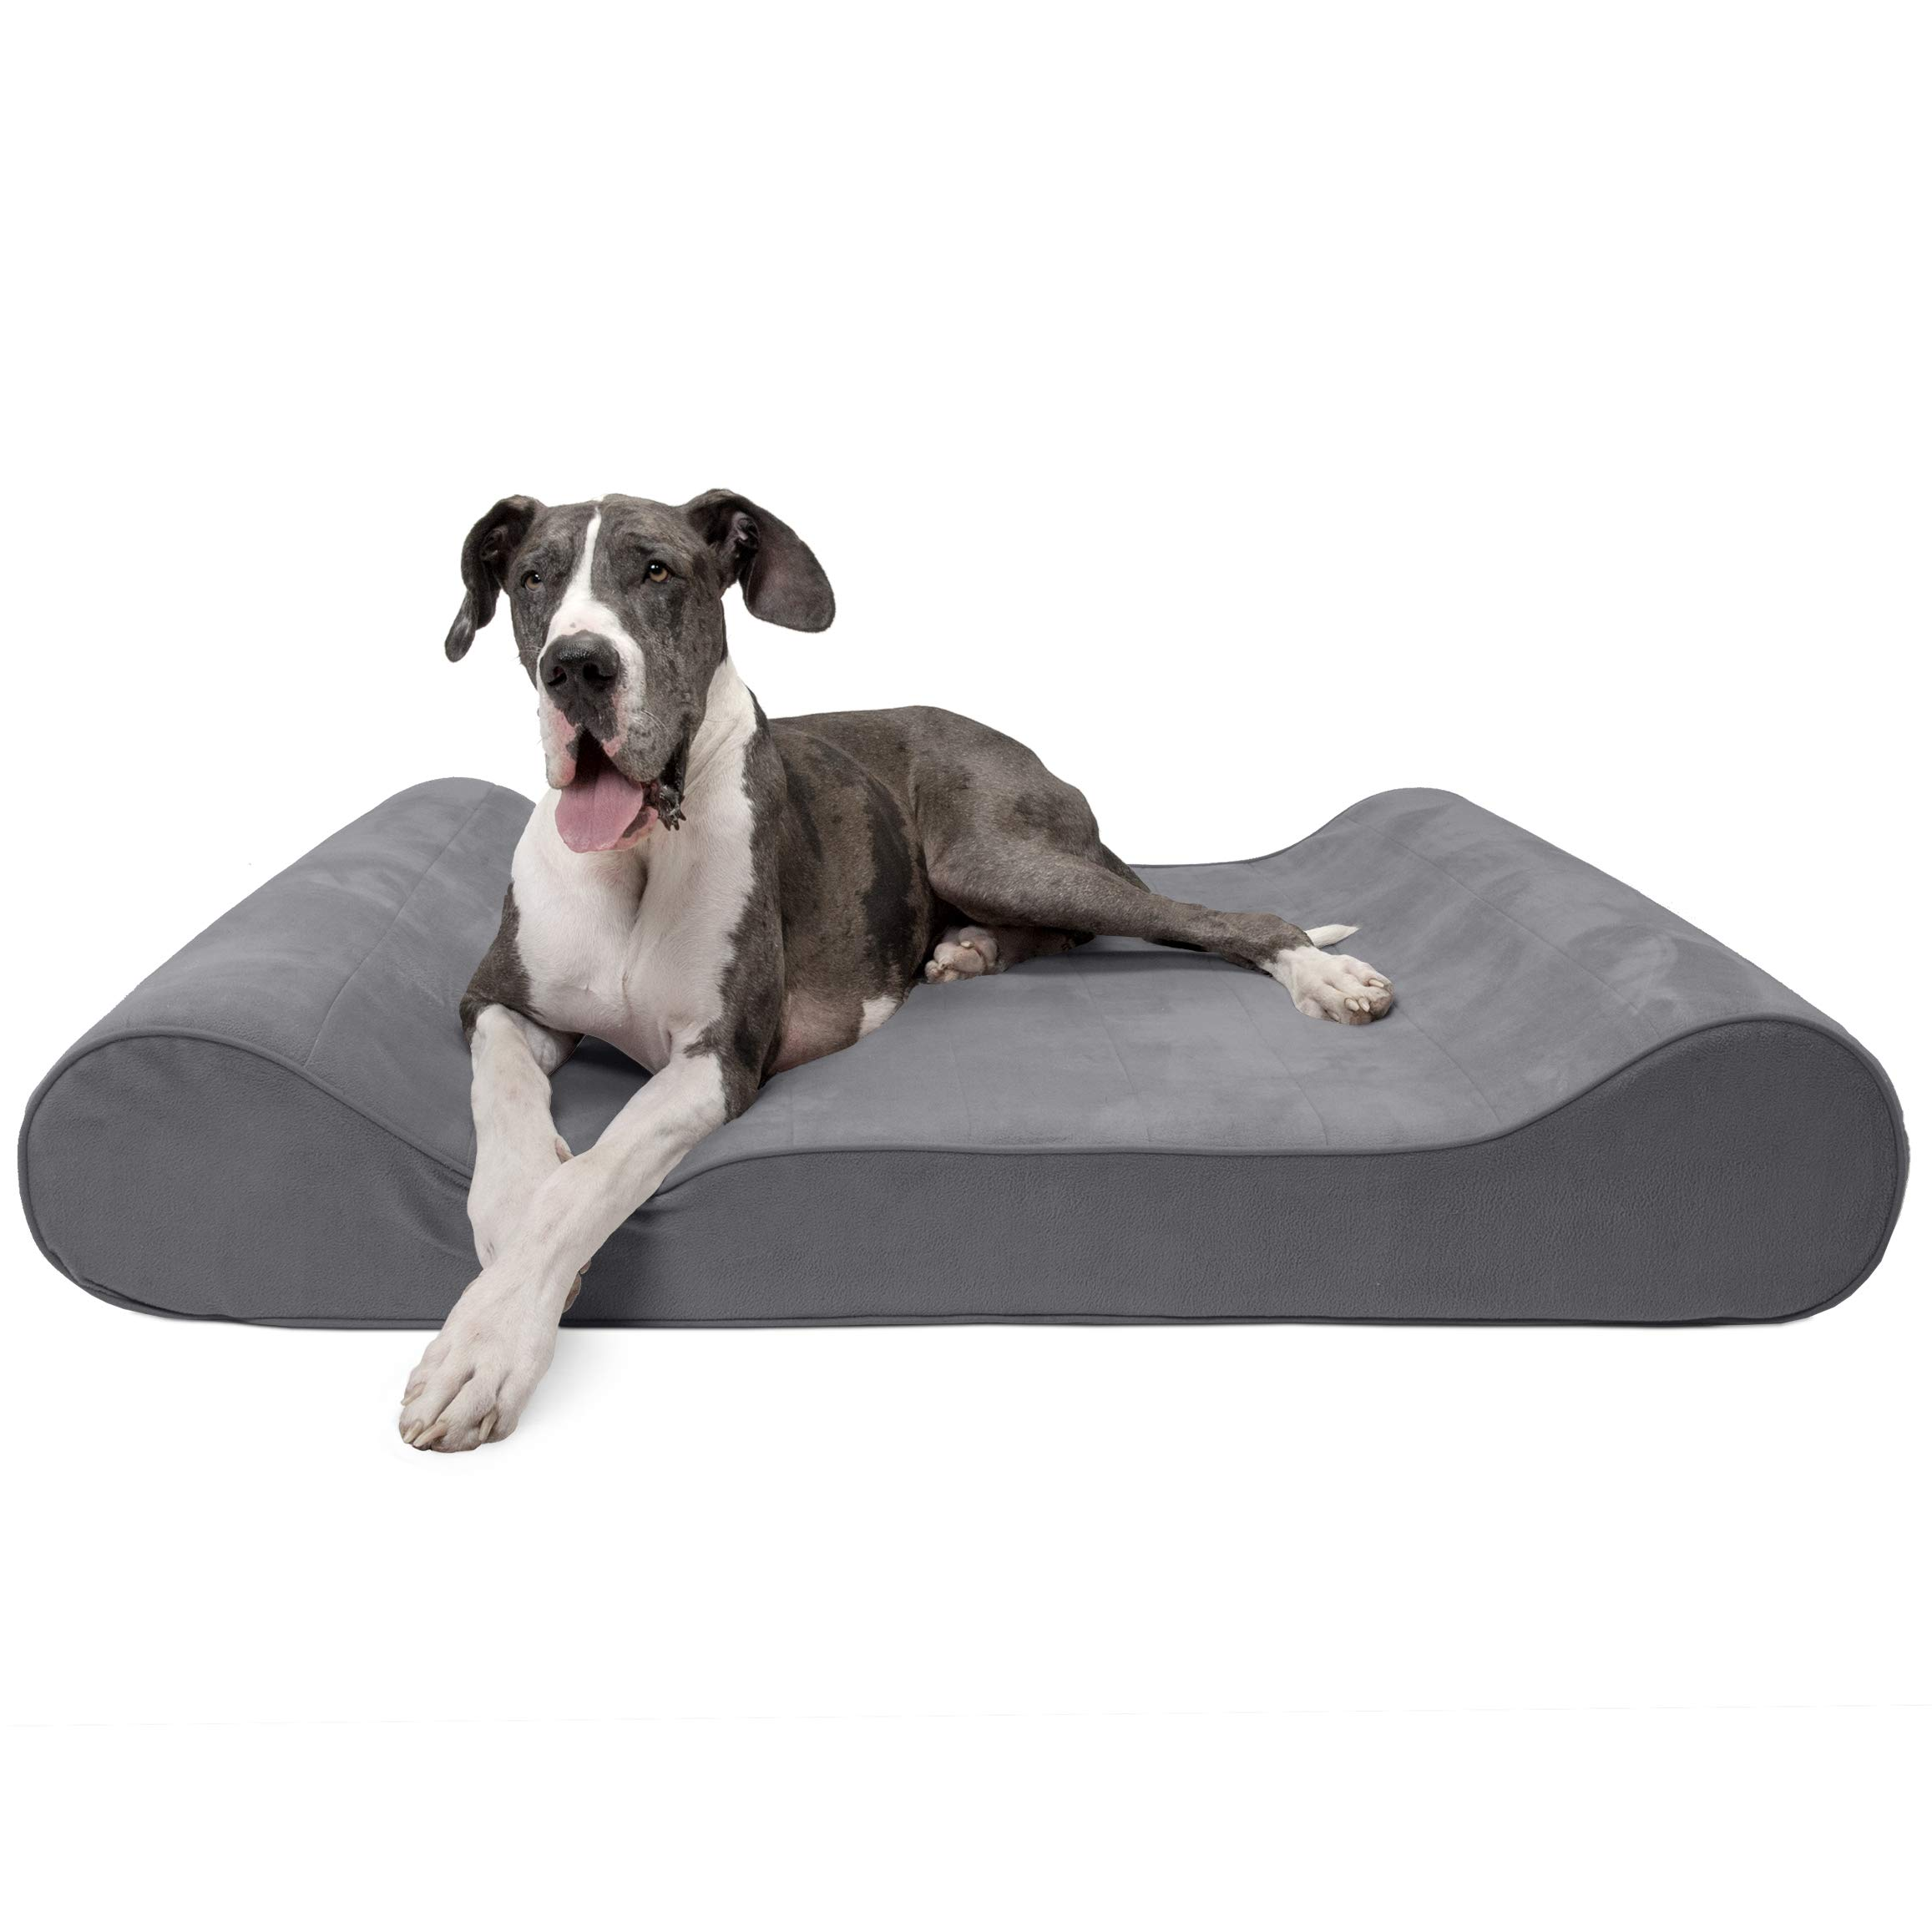 FurHaven Pet Dog Bed | Orthopedic Microvelvet Luxe Lounger Pet Bed for Dogs & Cats, Gray, Giant